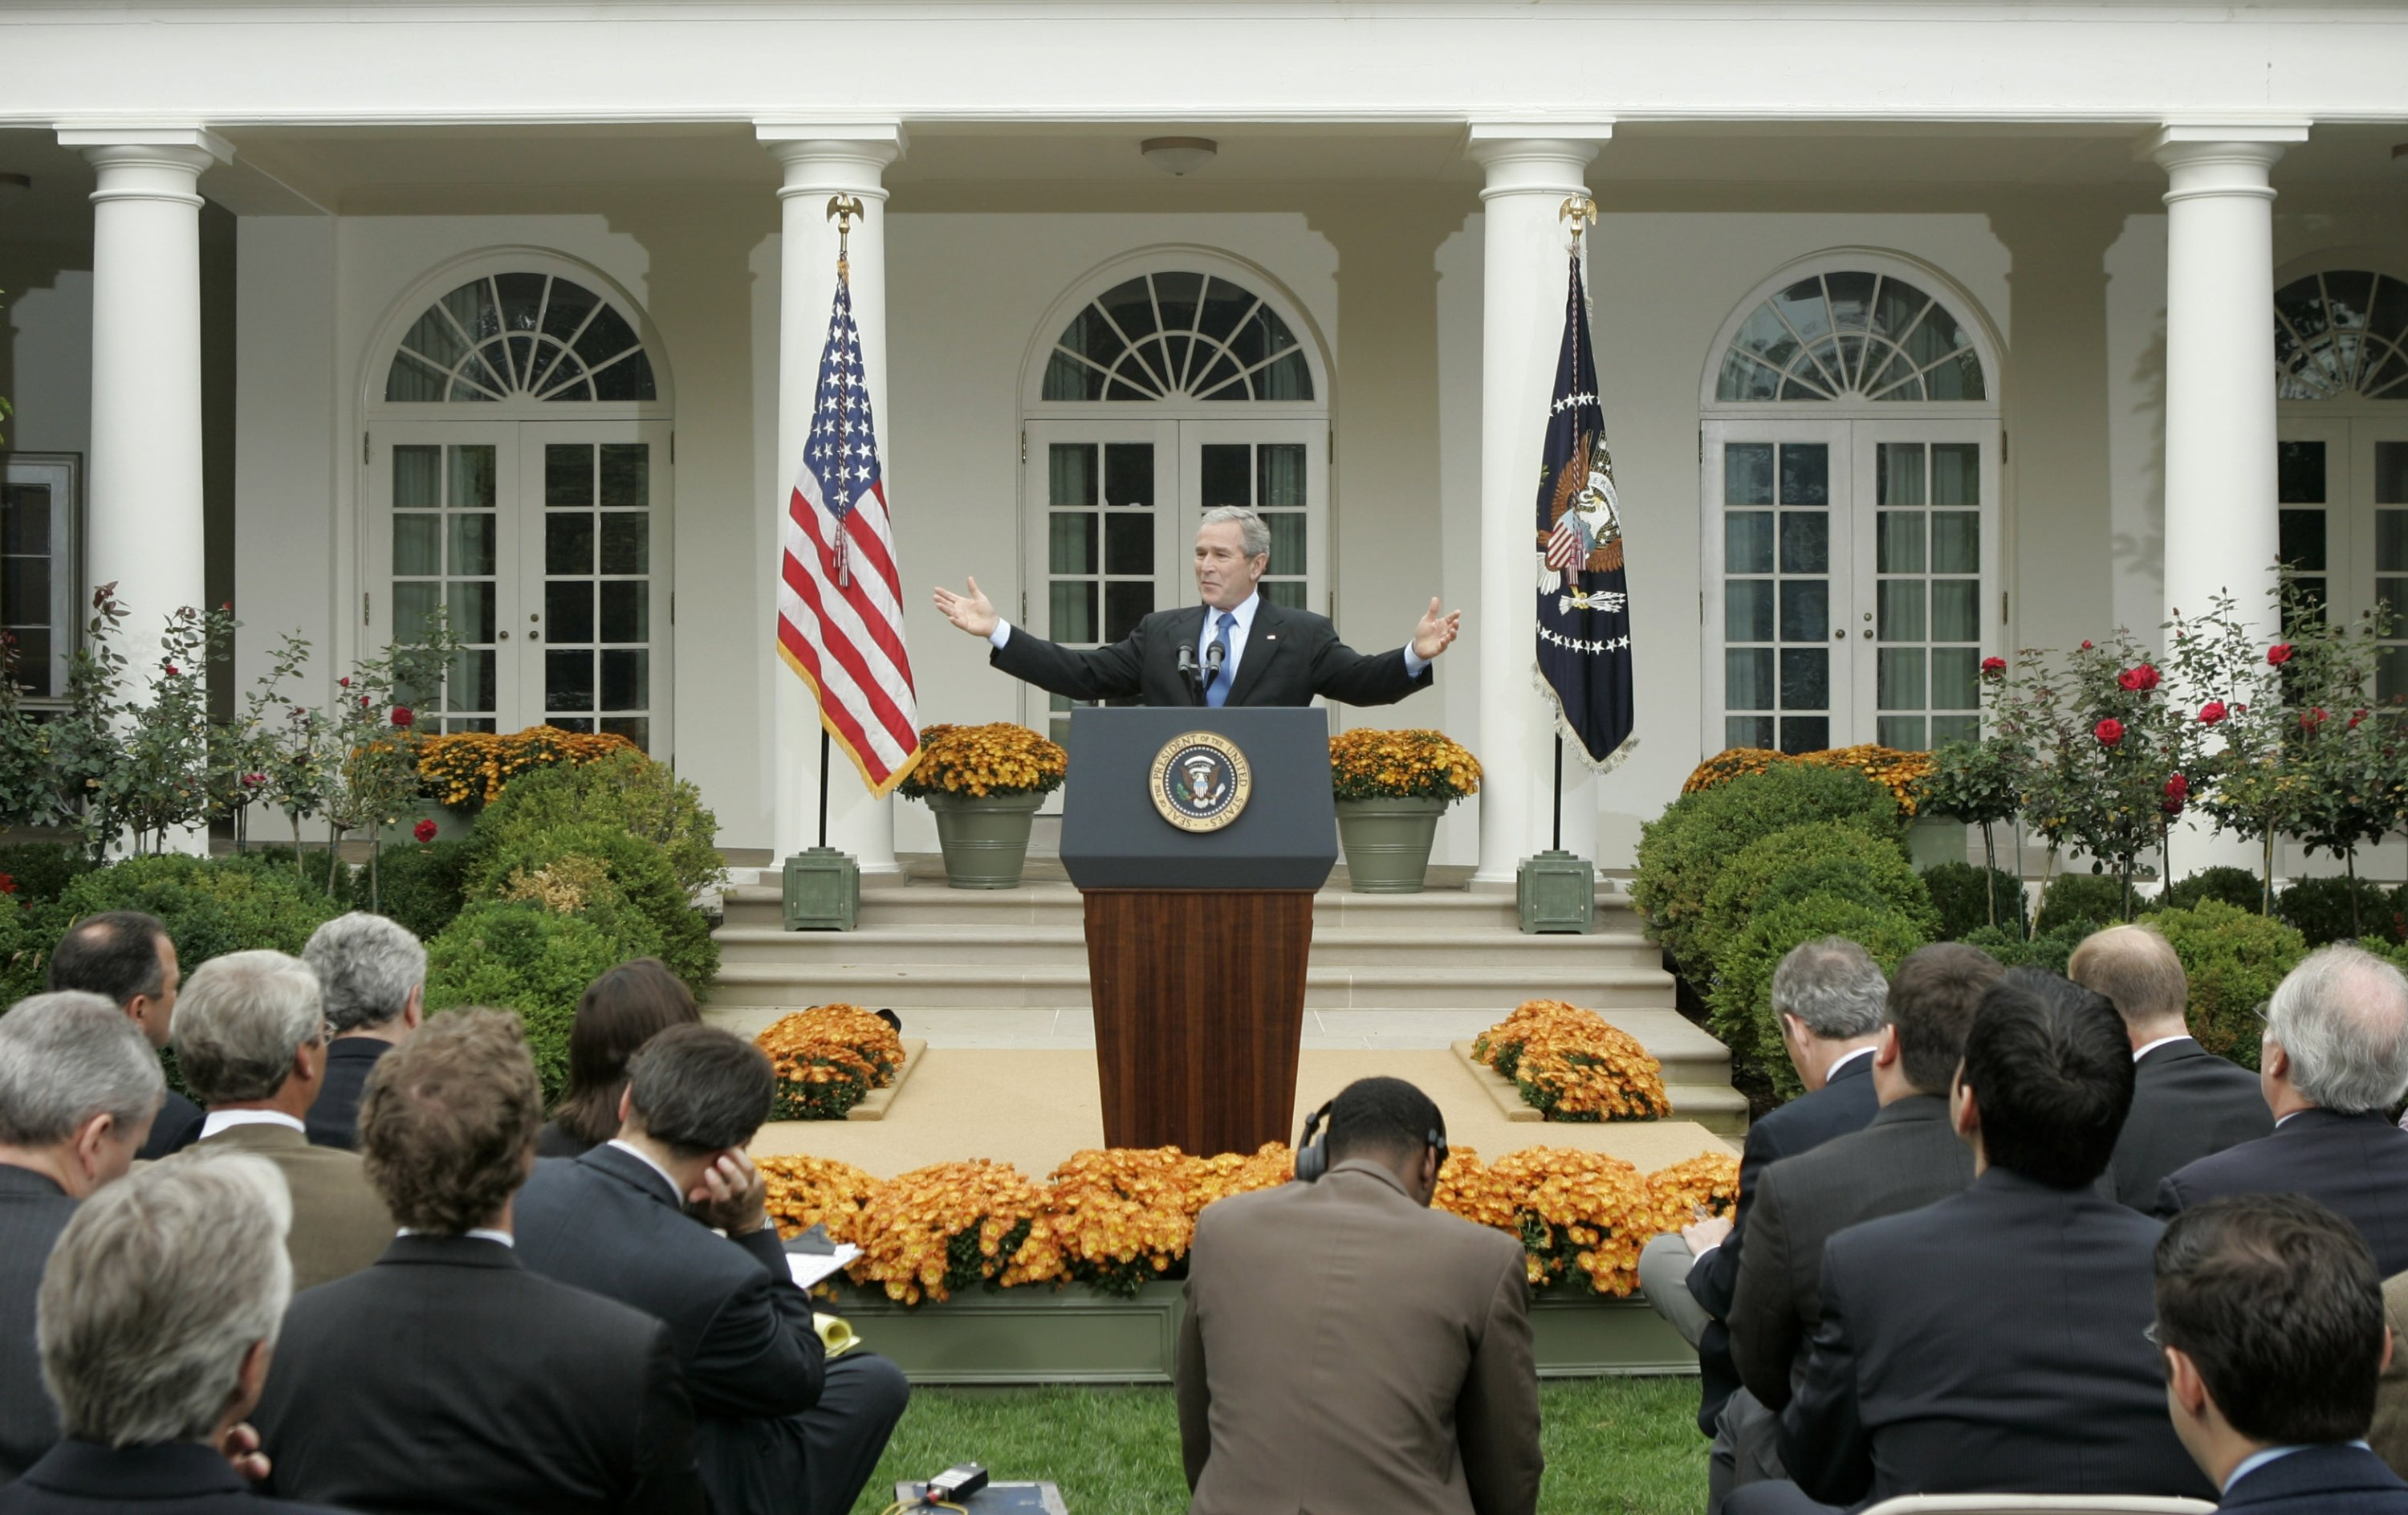 U.S. then-President George W. Bush gestures during a press conference in the Rose Garden of the White House, Washington, U.S., Oct. 11, 2006. (AP Photo)